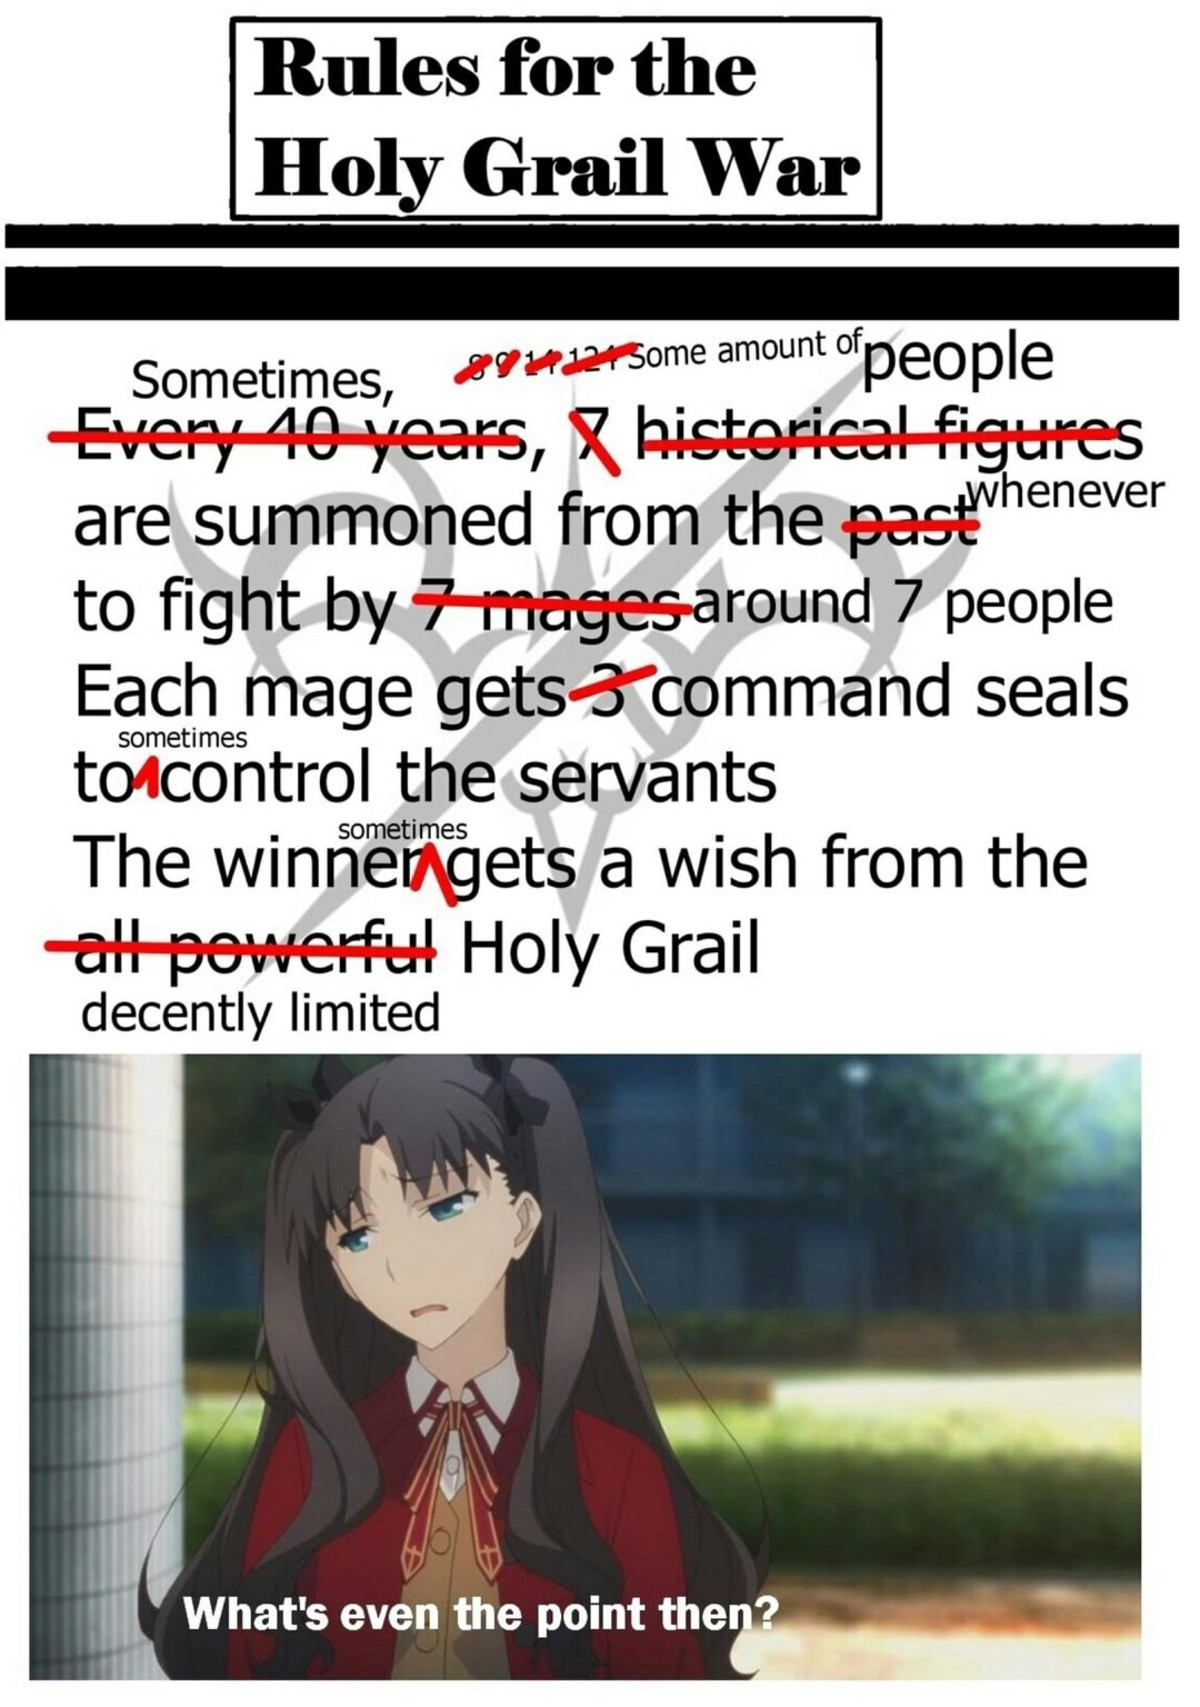 The rules. .. There's only one mistake that I can see here, and that is the original Fuyuki Grail War normally takes place every 60 years, not 40.